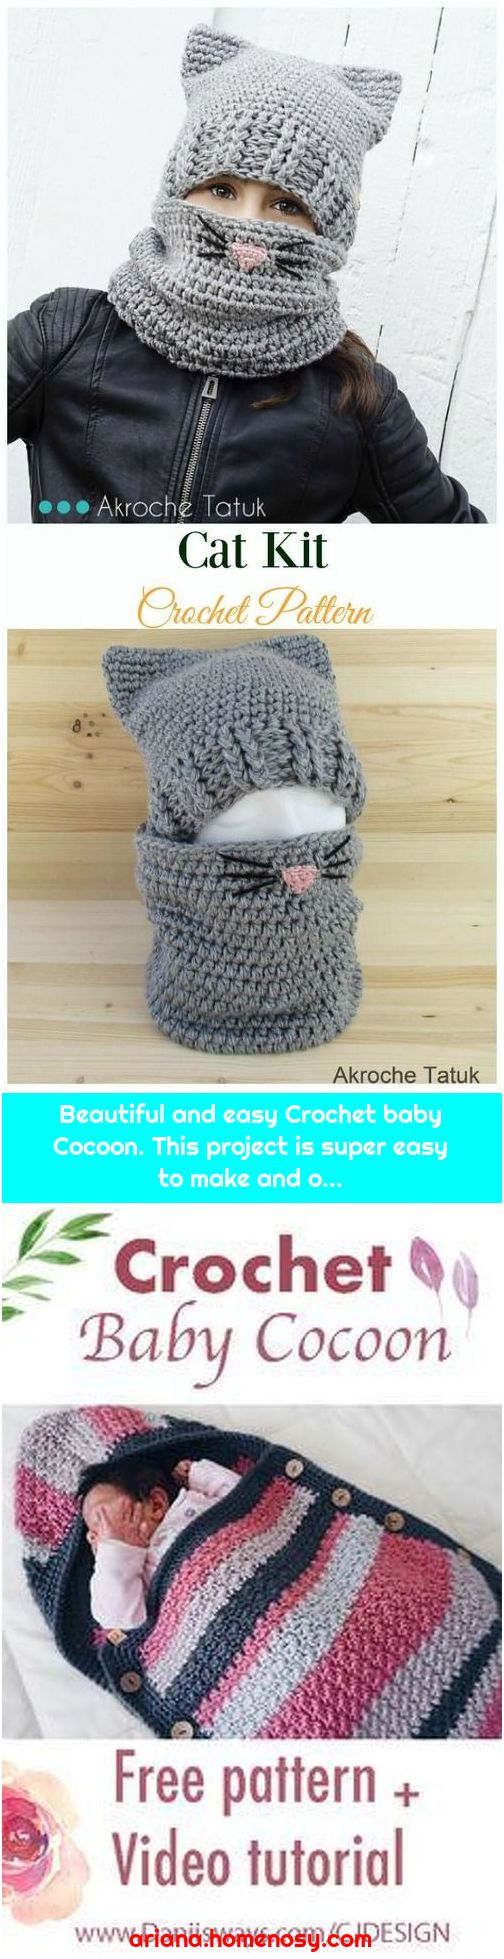 Beautiful and easy Crochet baby Cocoon. This project is super easy to make and o...